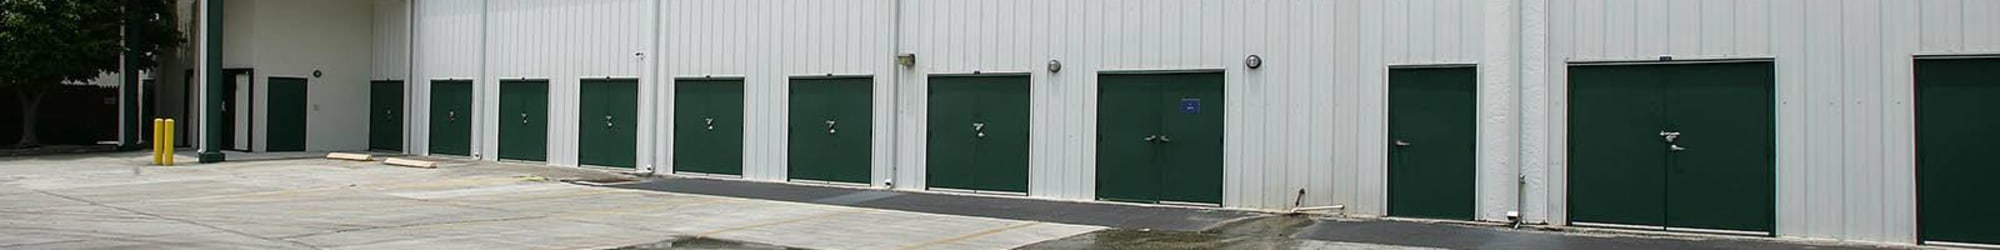 Self Storage Sarasota Fl Storage Unit Sizes Prices